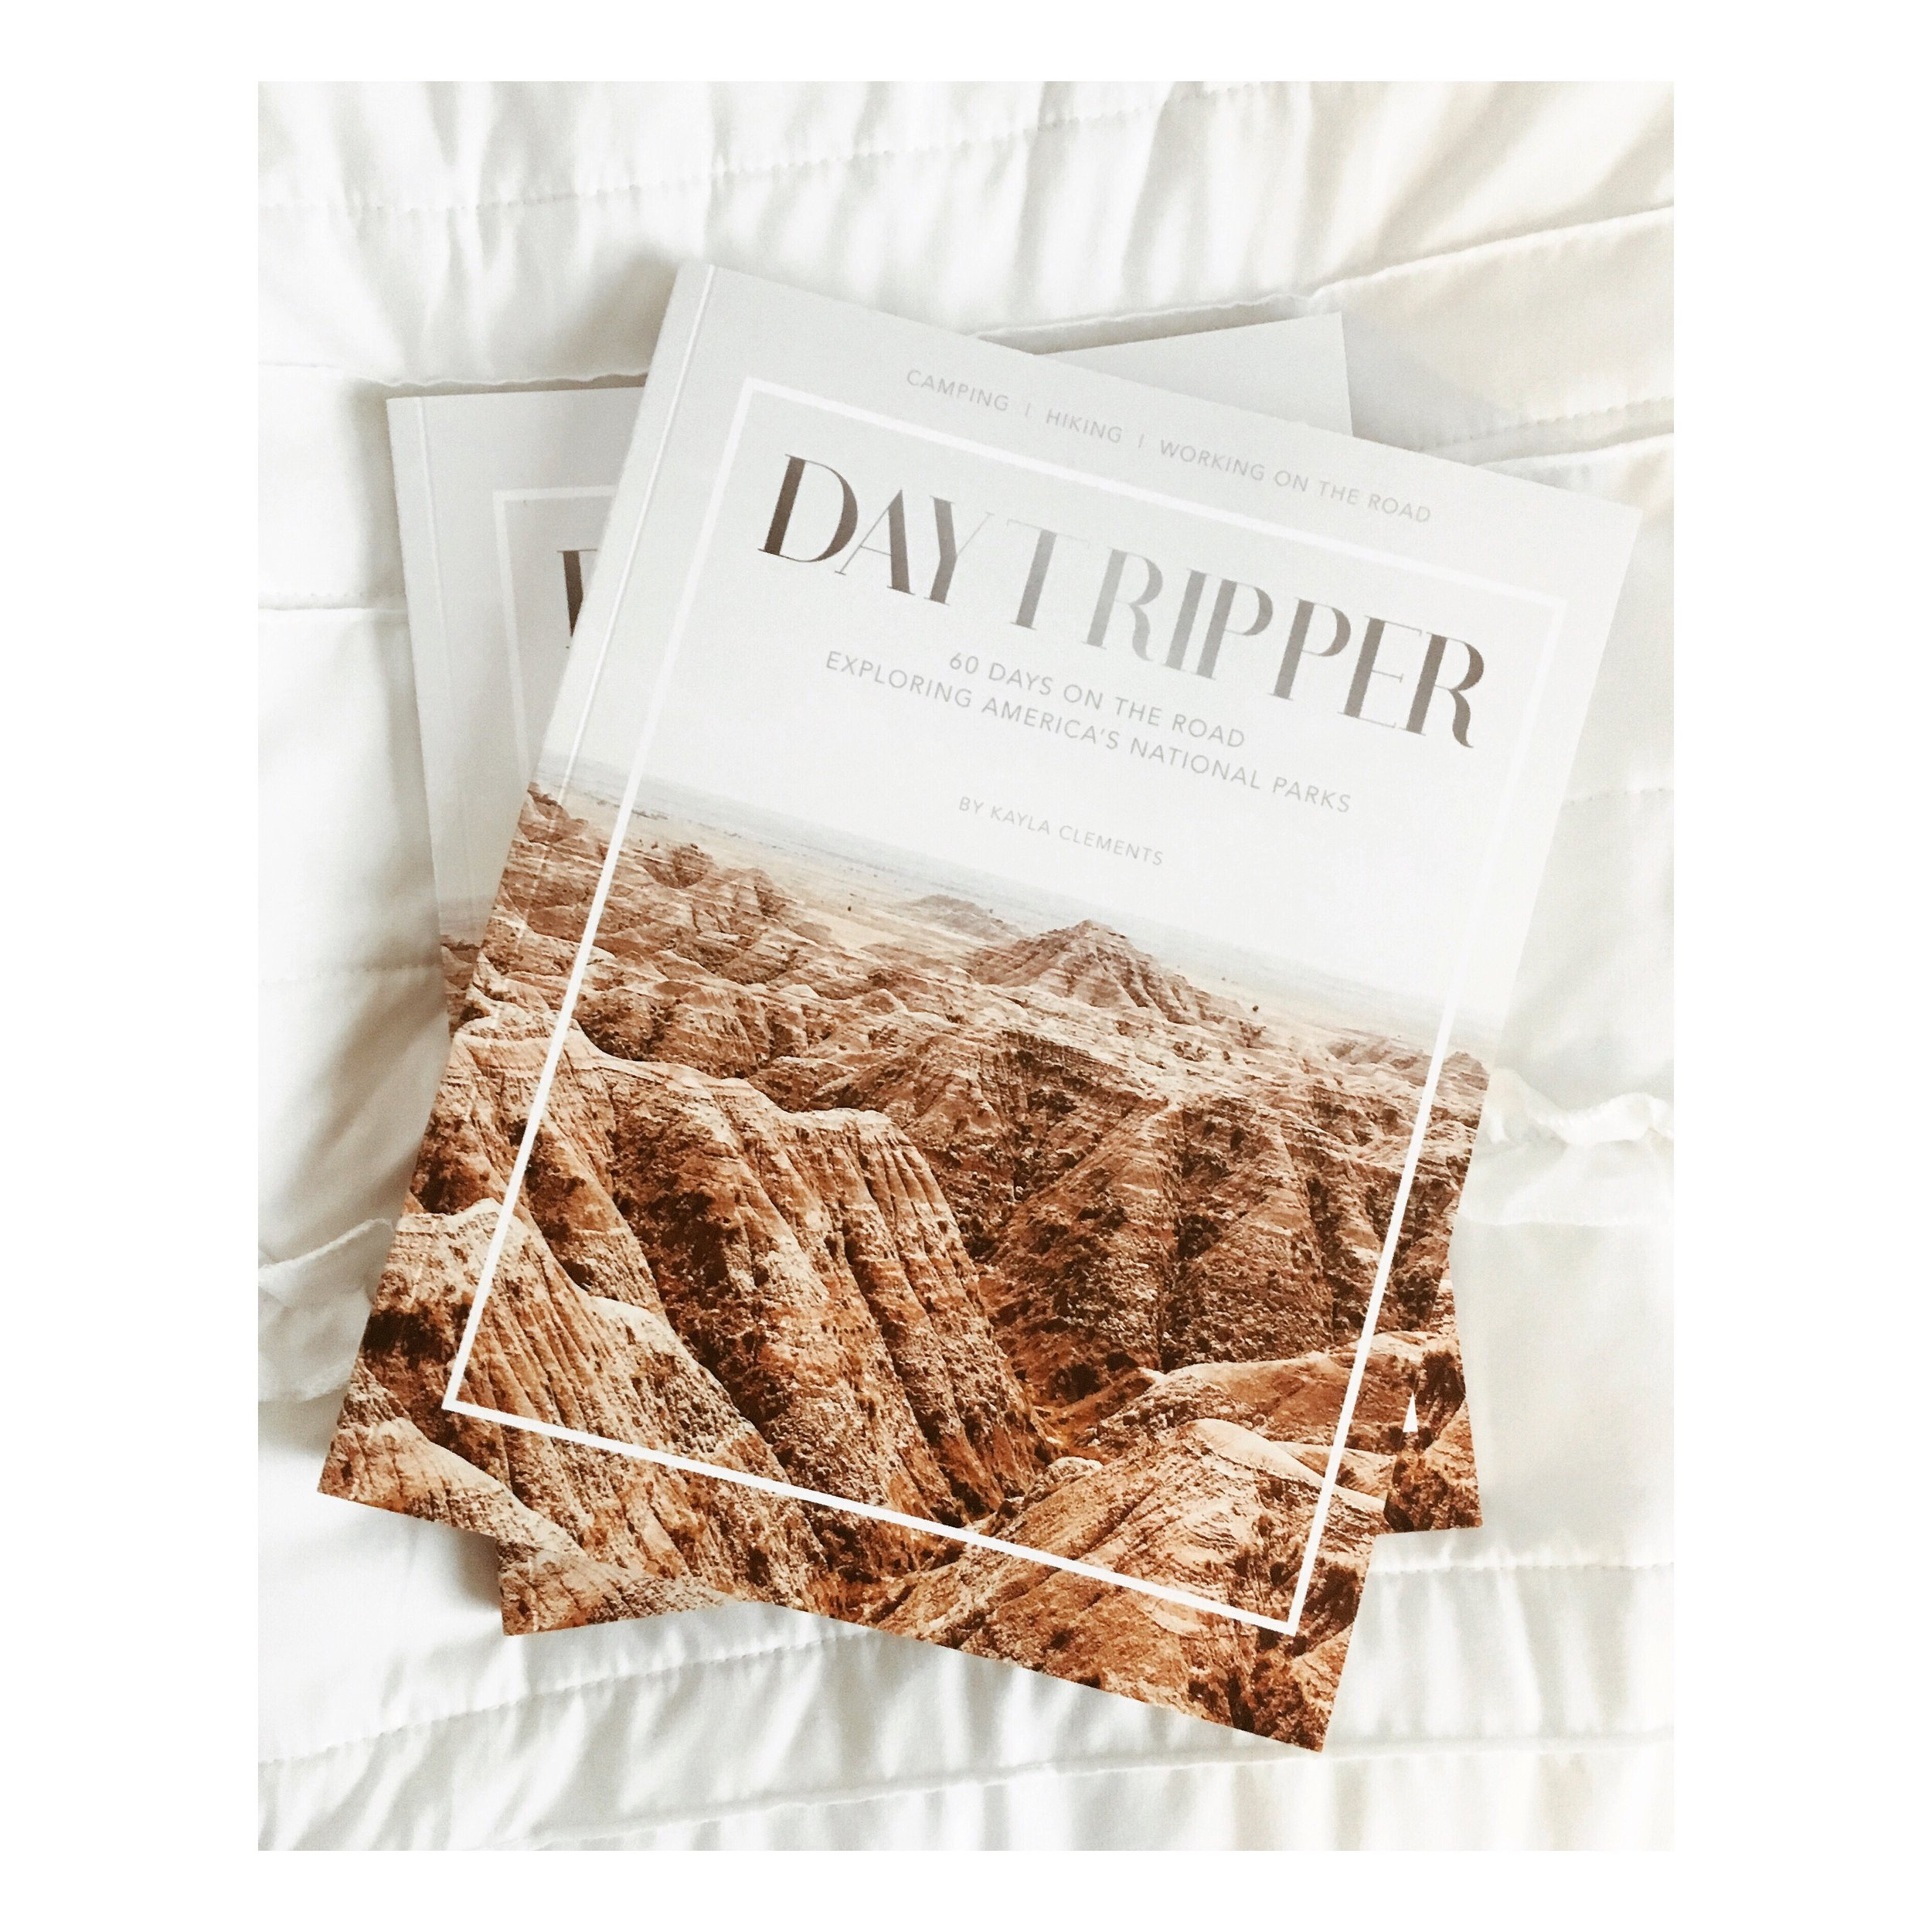 The first printed proof of   Daytripper: 60 Days on the Road Exploring America's National Parks